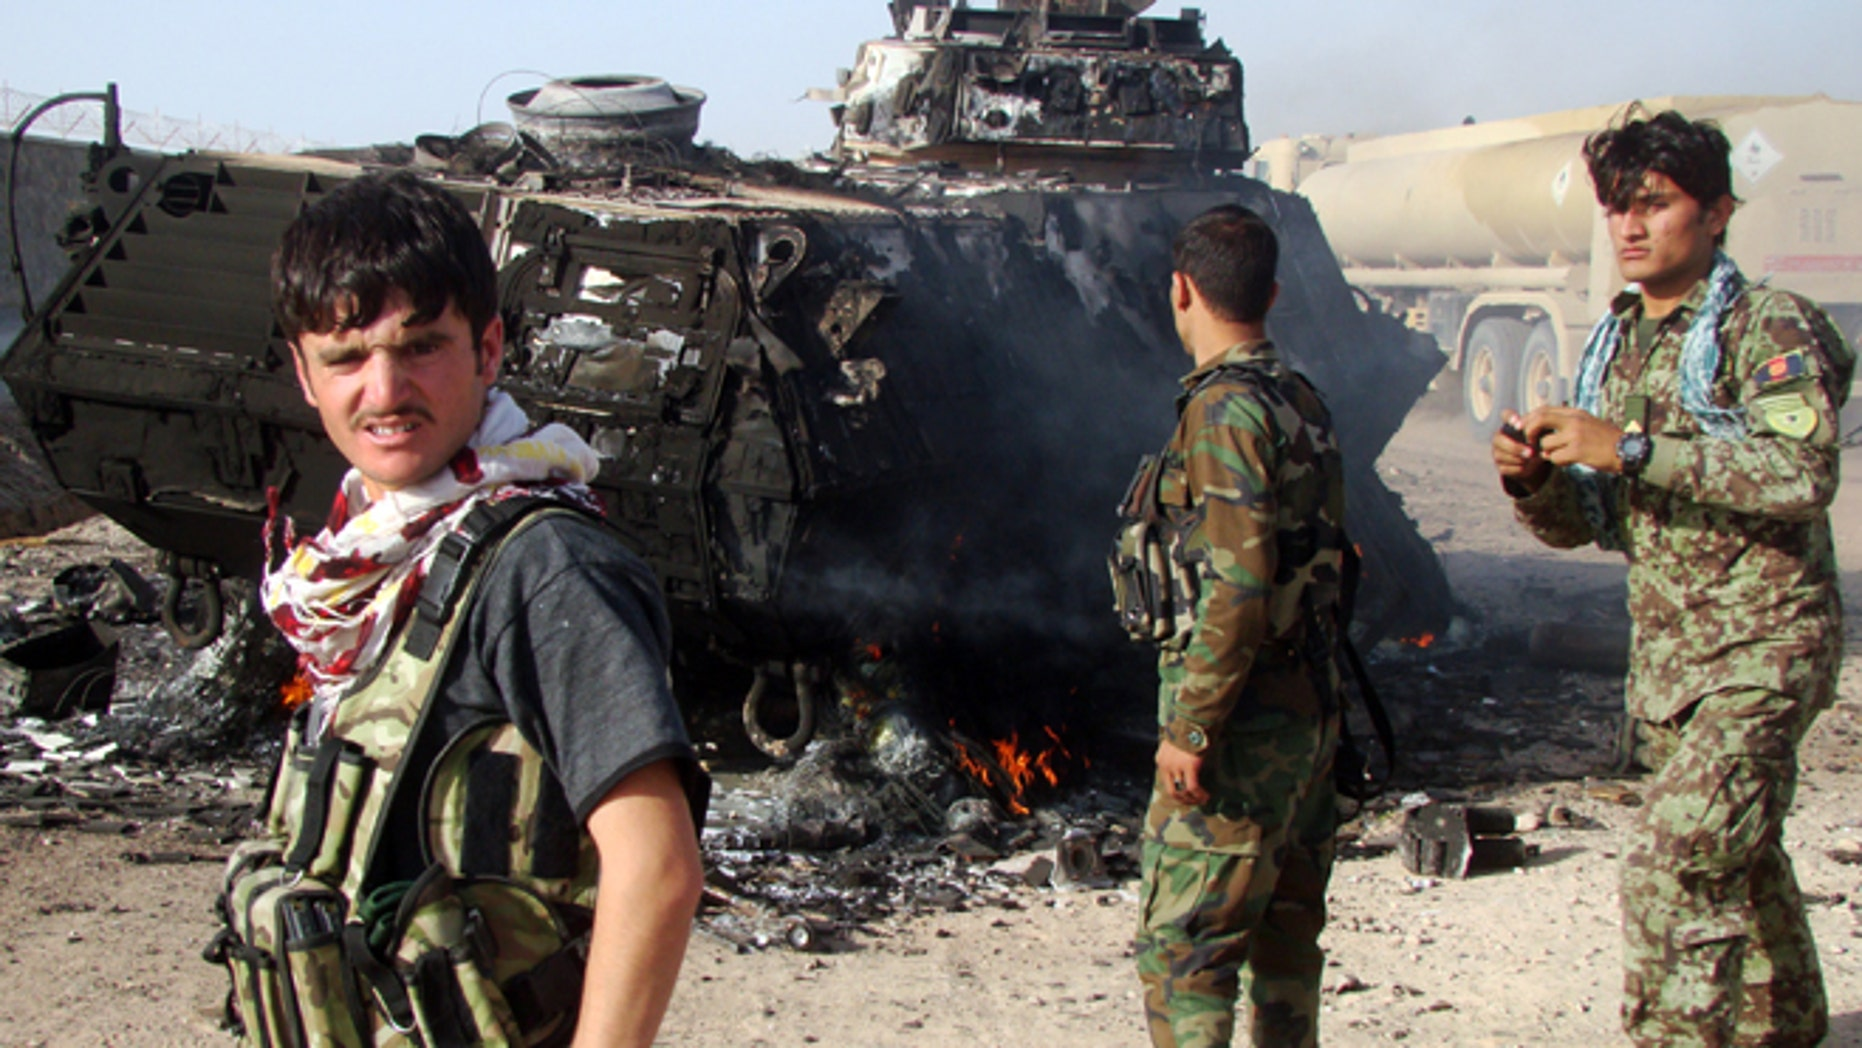 Oct. 18, 2014: In this file photo, Afghan security forces inspect the site of a suicide attack, targeting an Afghanistan's National Army convoy on the outskirts of Lashkar Gah, the capital of Helmand province, Afghanistan.